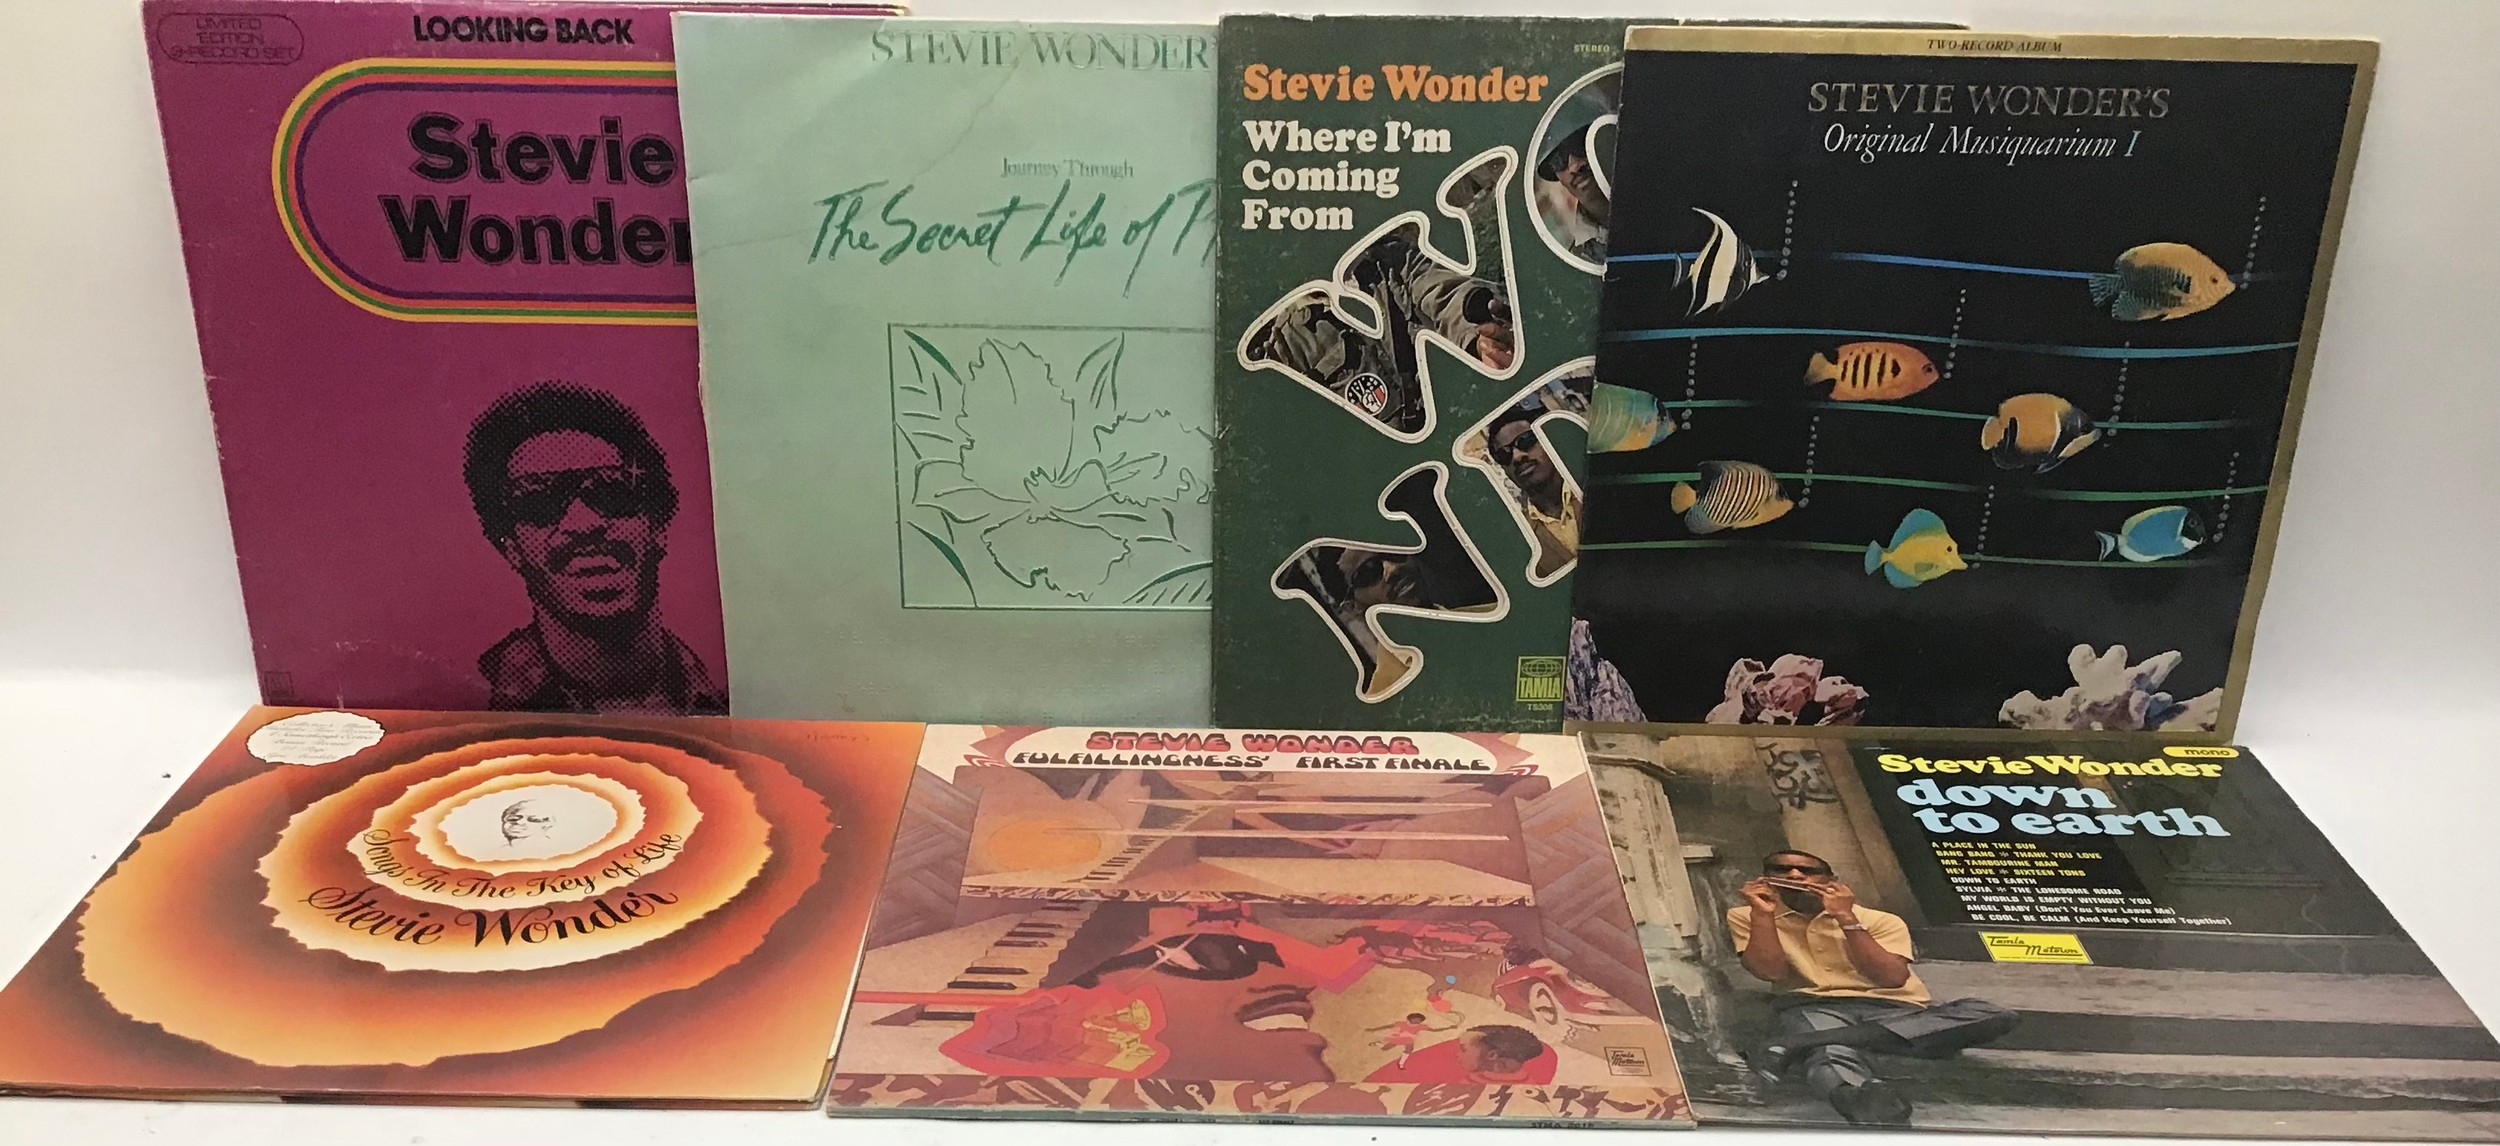 STEVIE WONDER VINYL LP RECORDS X 7. Found here in VG+ conditions with a demo copy of ?Where I?m